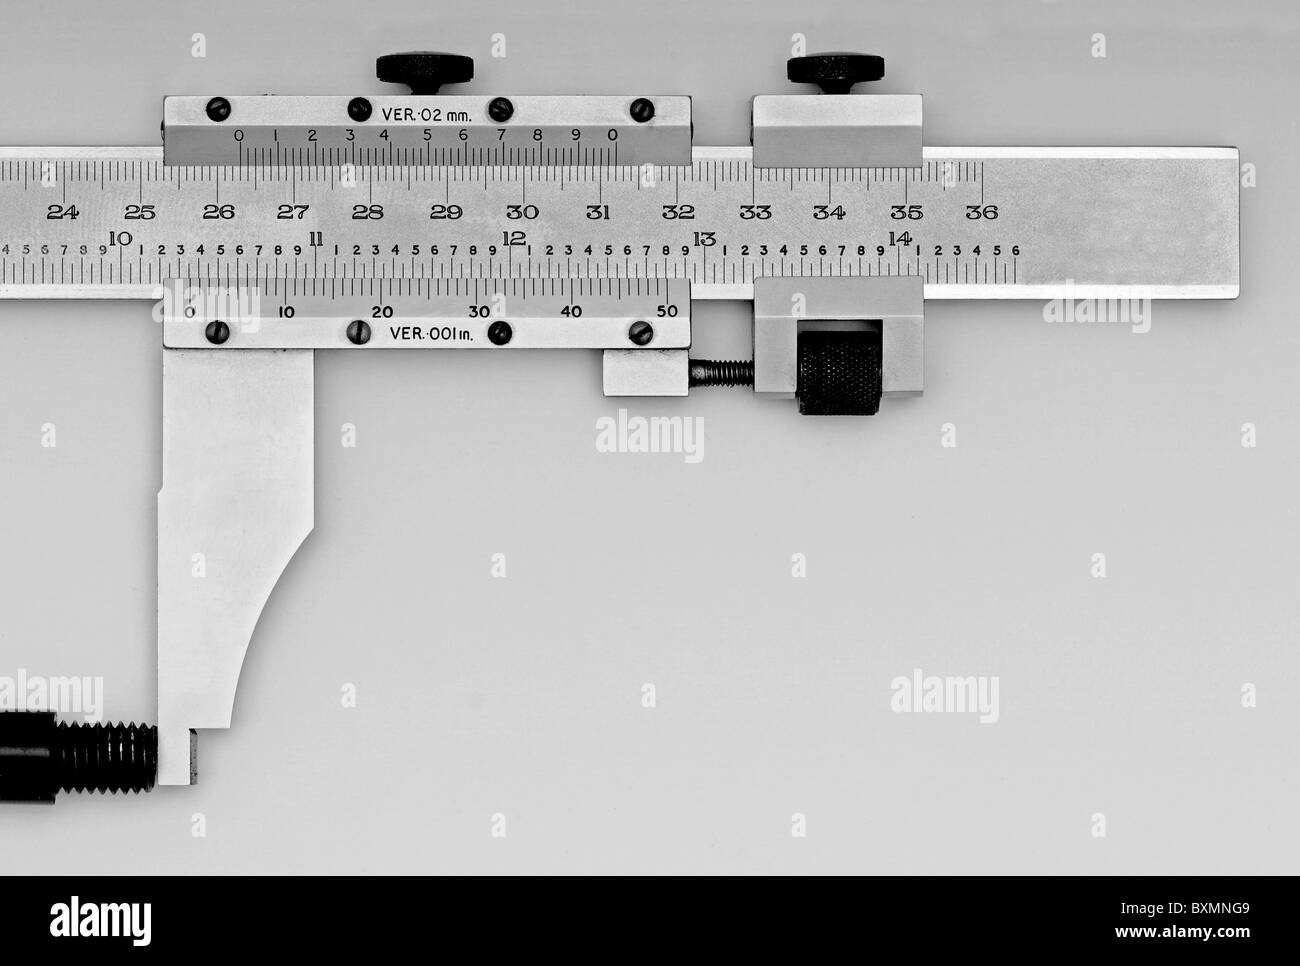 Imperial (inch) and metric scale Vernier - Stock Image